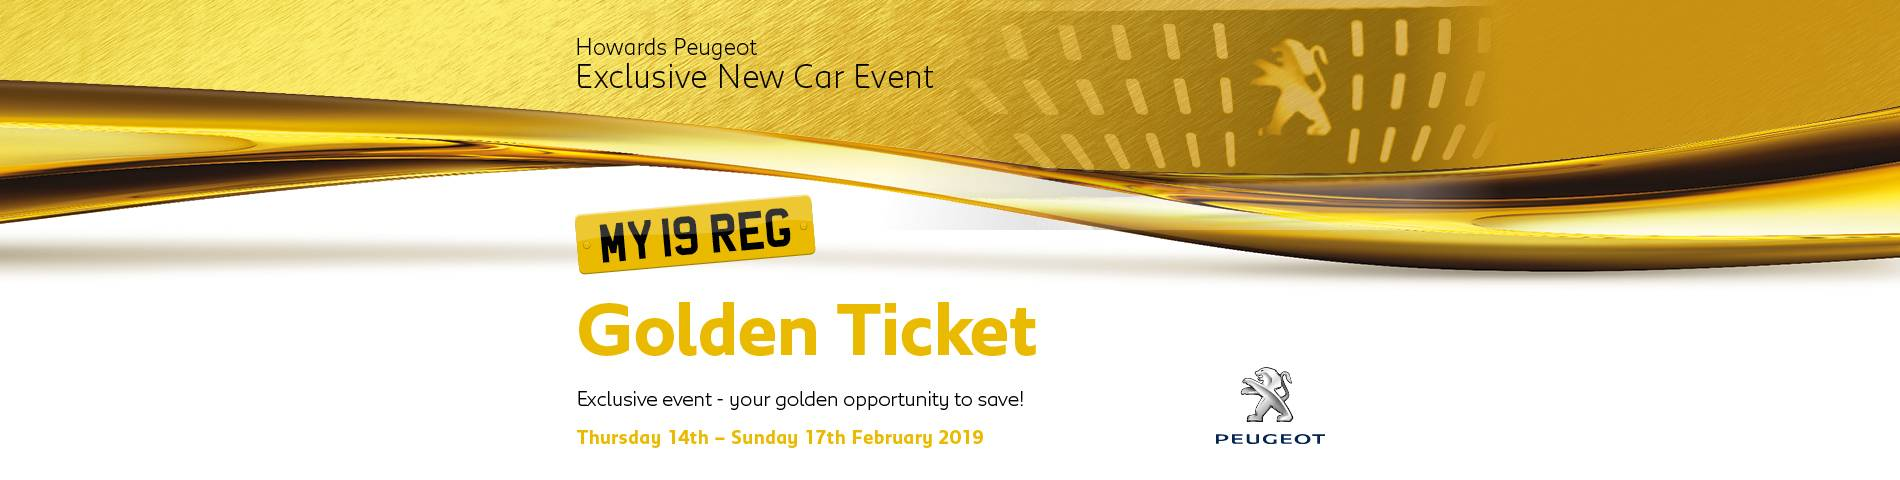 Peugeot WSM Golden Ticket